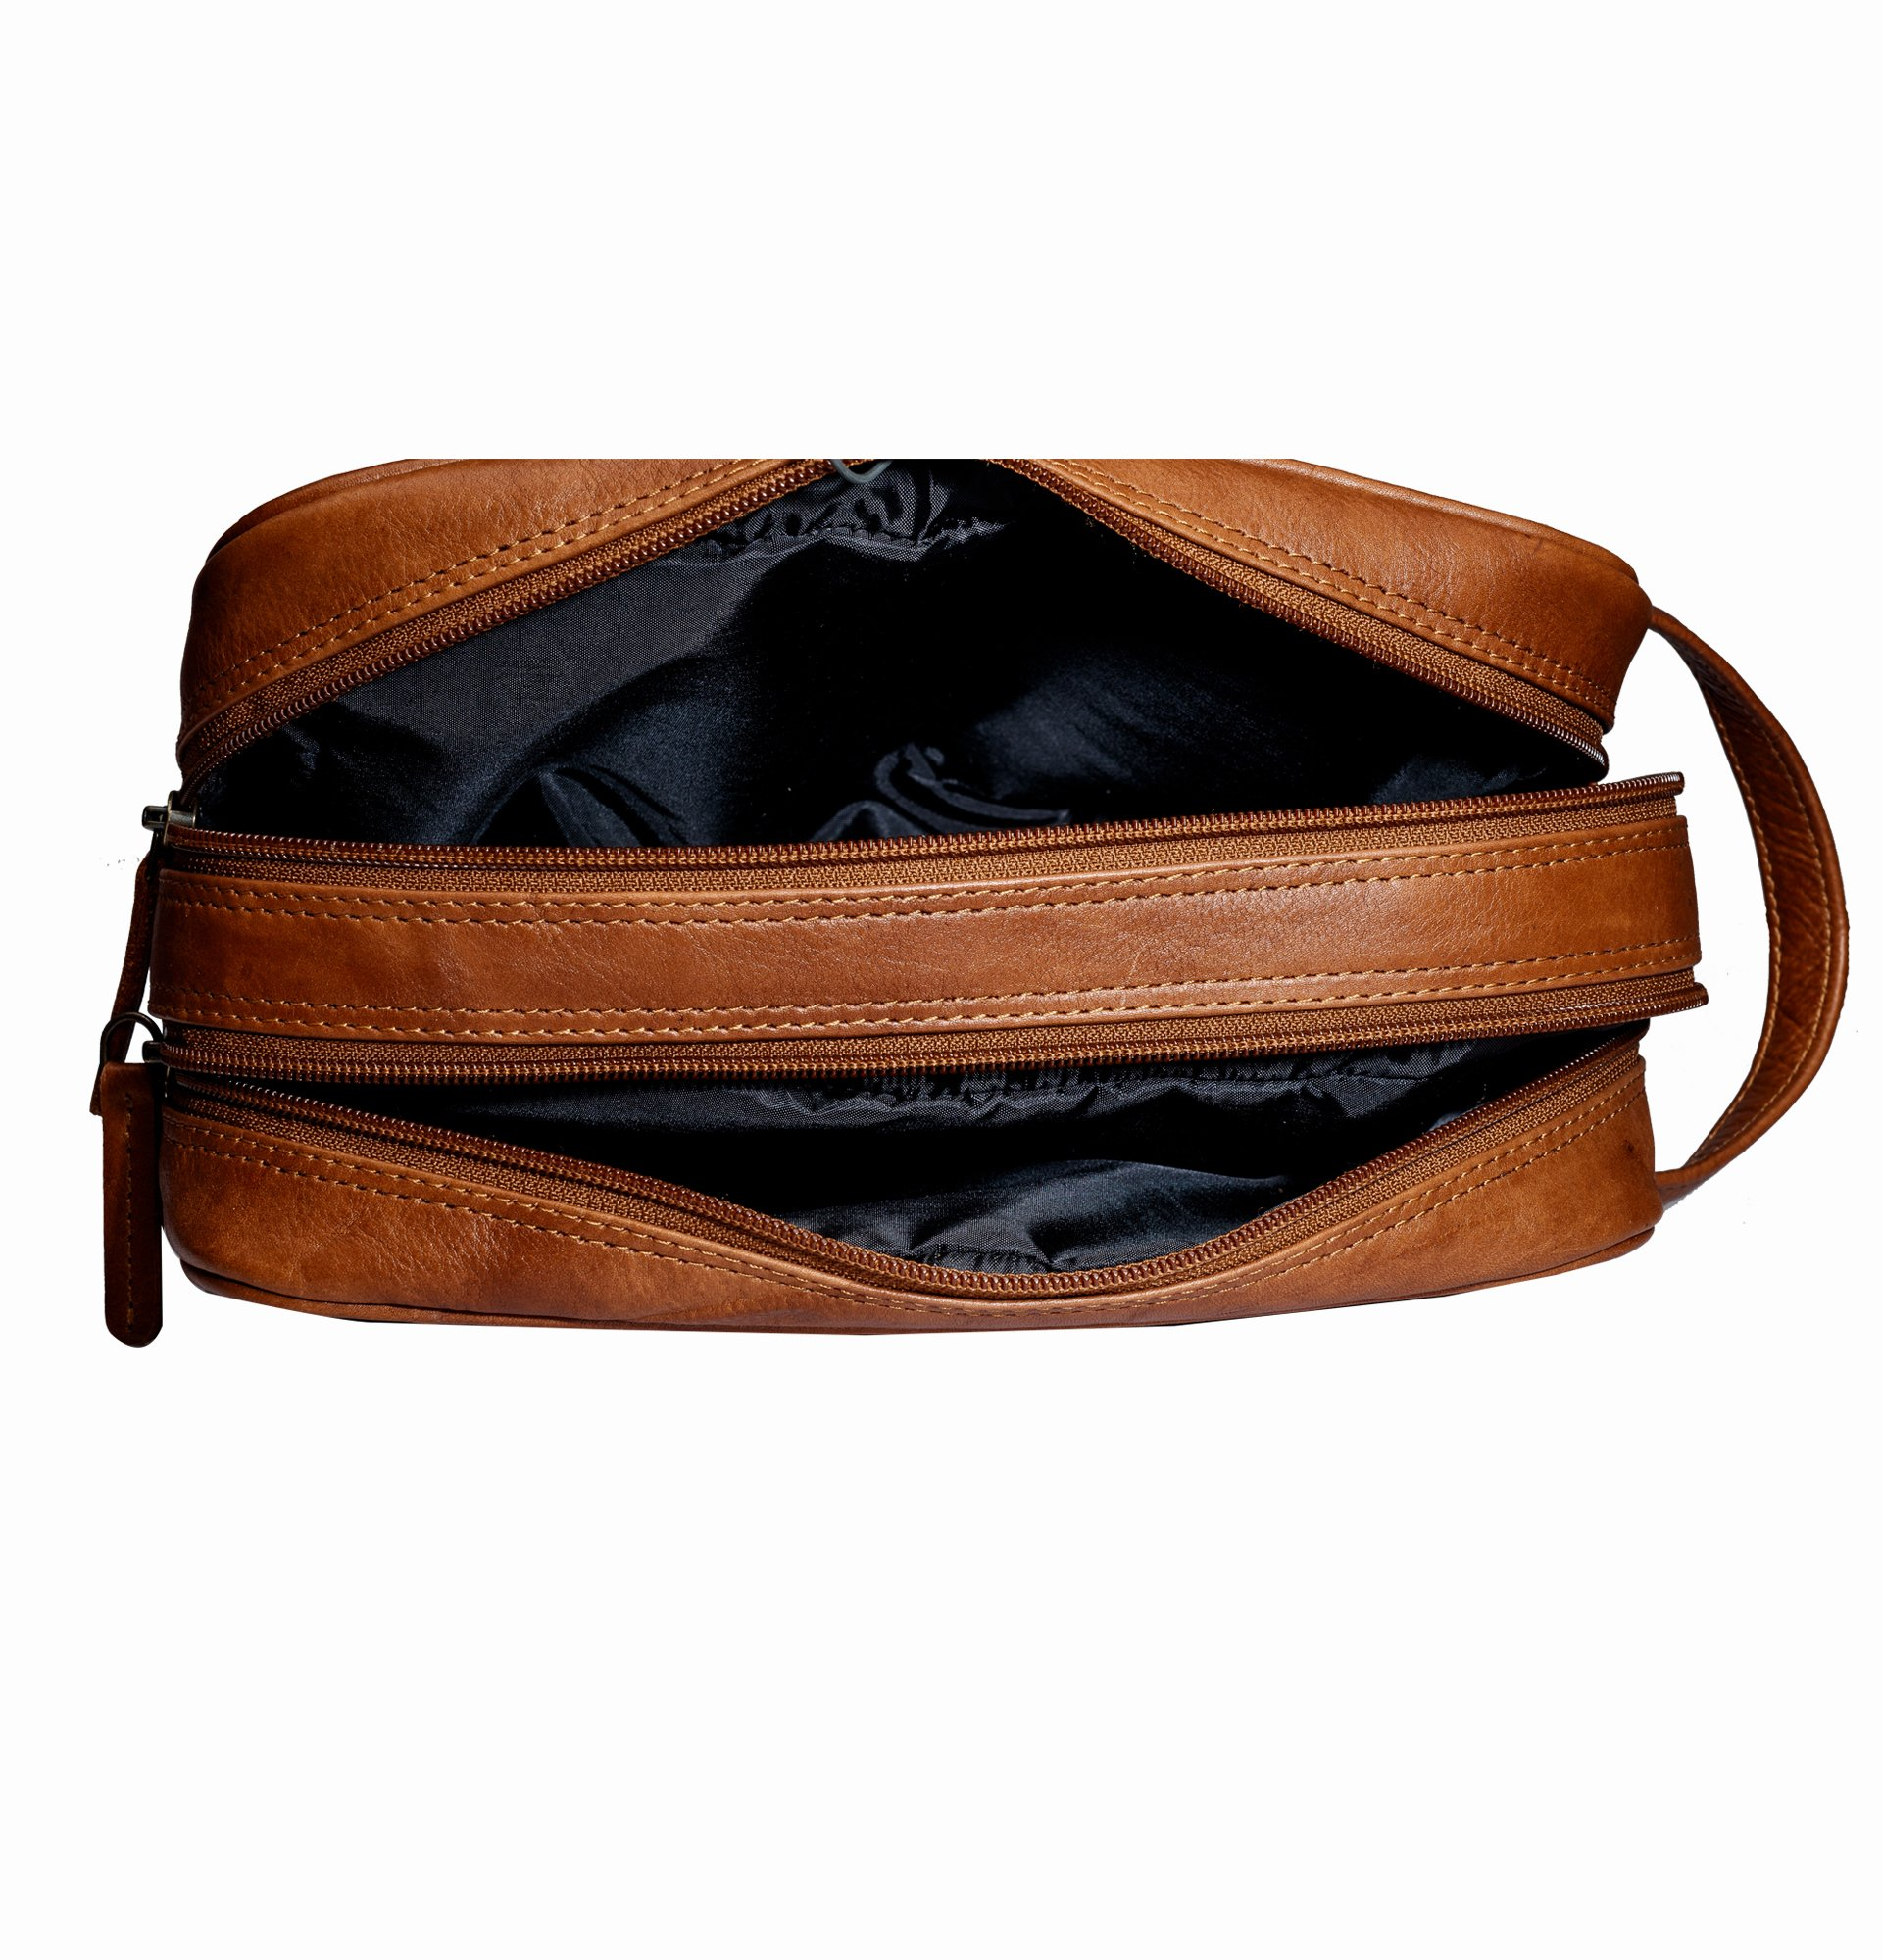 Finelaer Men Brown Leather Toiletry Travel Dopp Bag by FINELAER (Image #6)